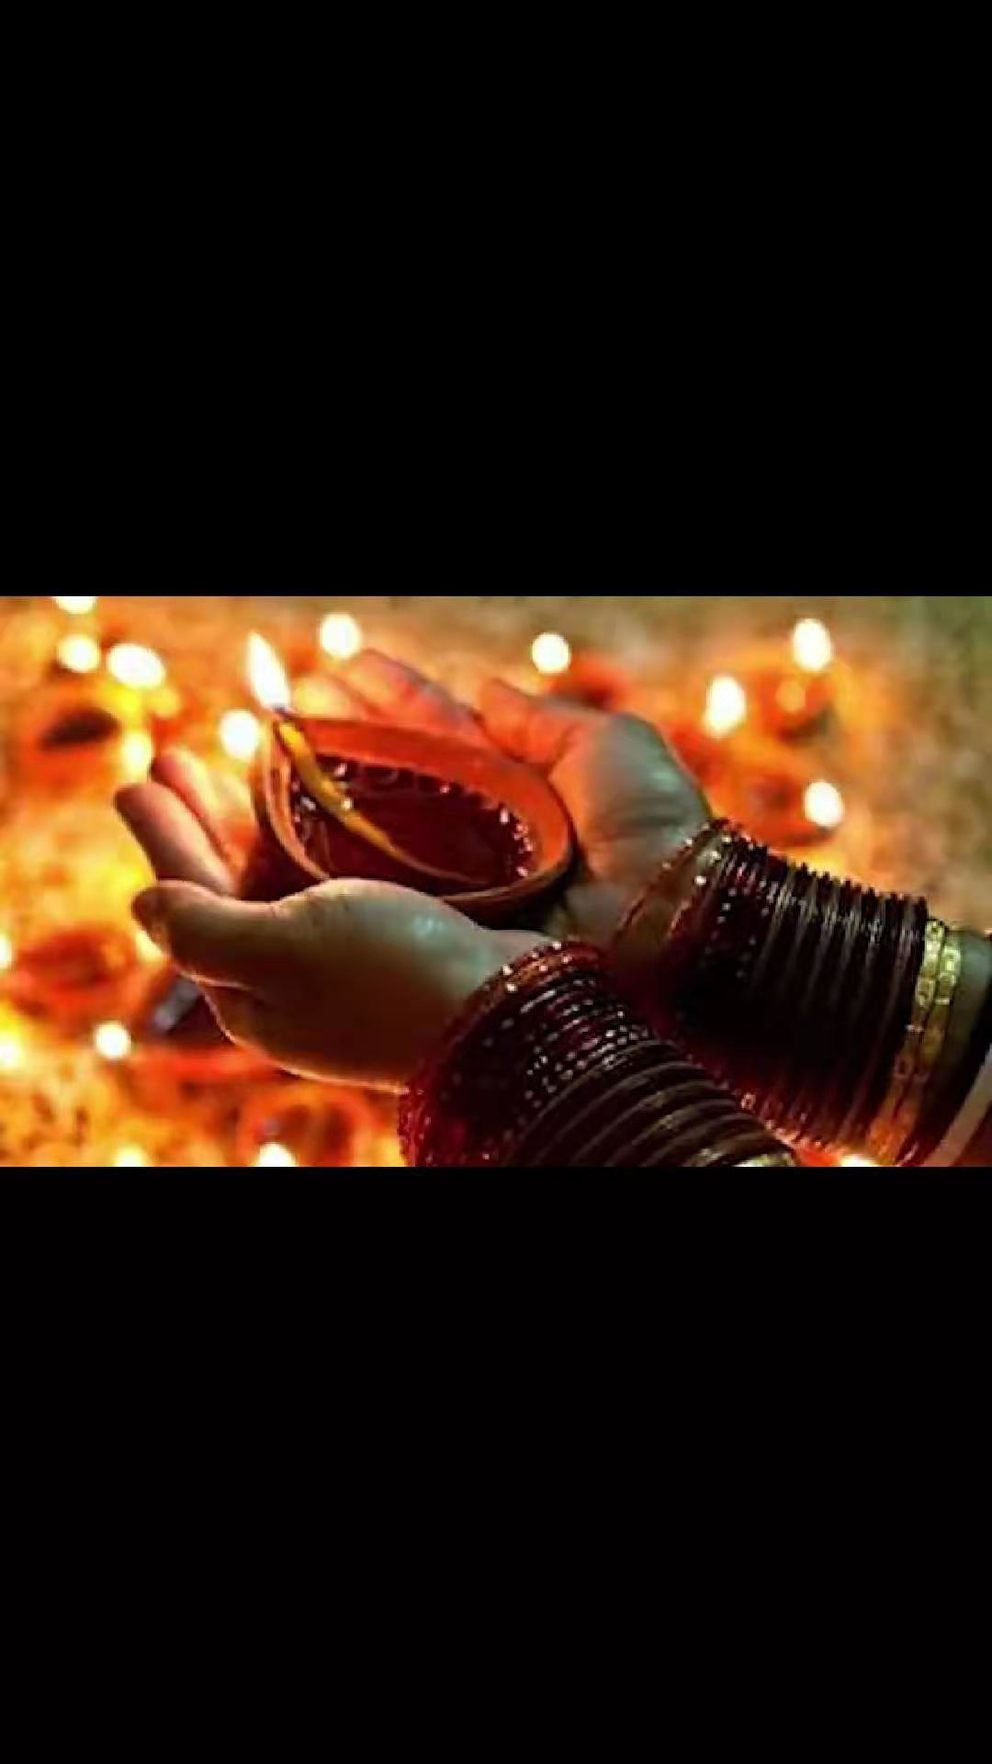 VACMASTER INDIA PARTNER SEND BLESS WITH BEAUTIFUL LANTERN